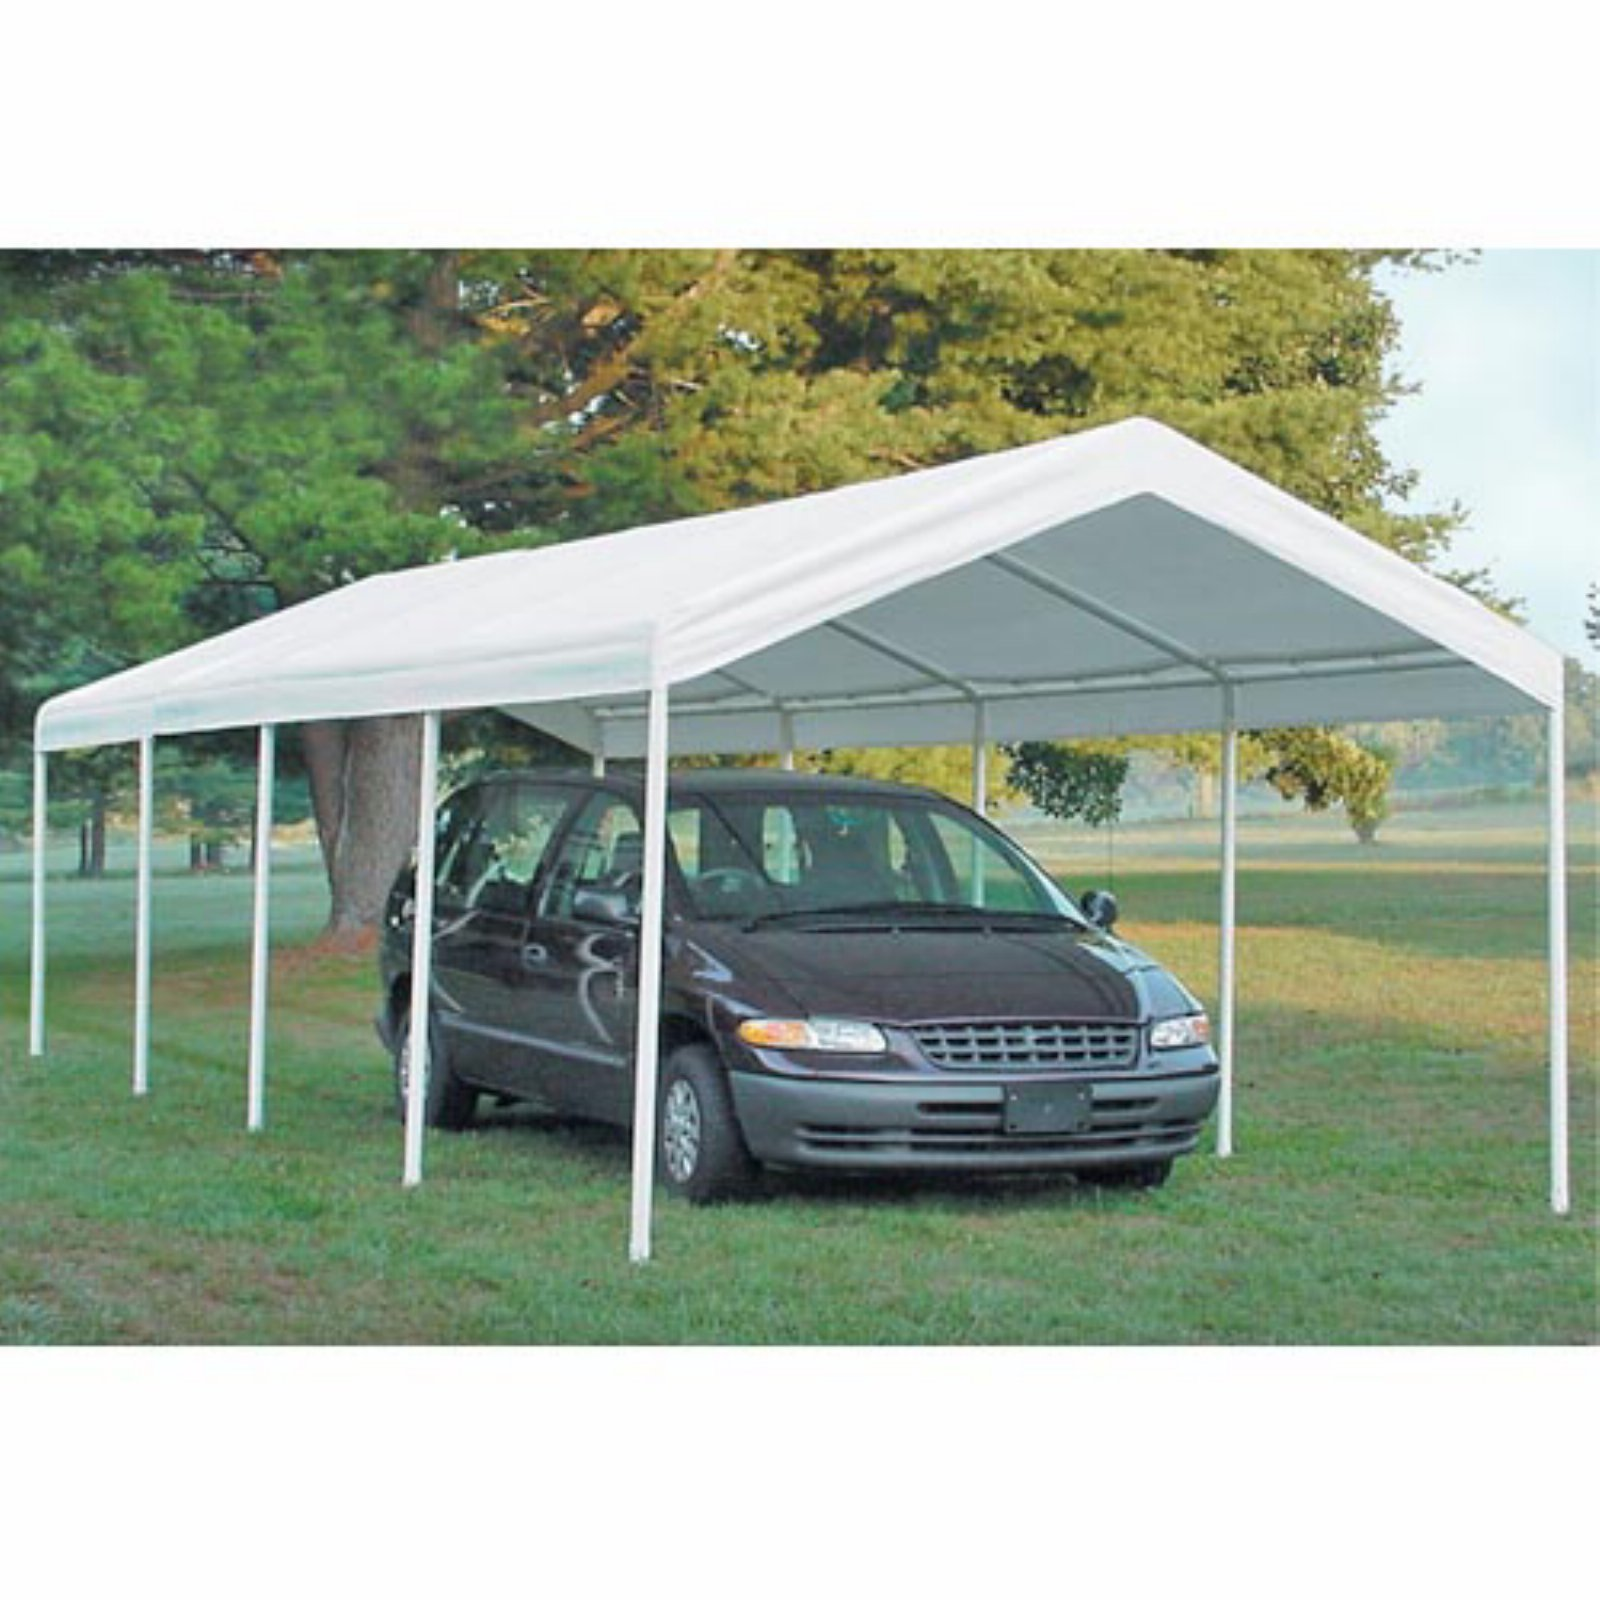 Shelterlogic Super Max 12' x 26' 5-Rib Canopy White Cover